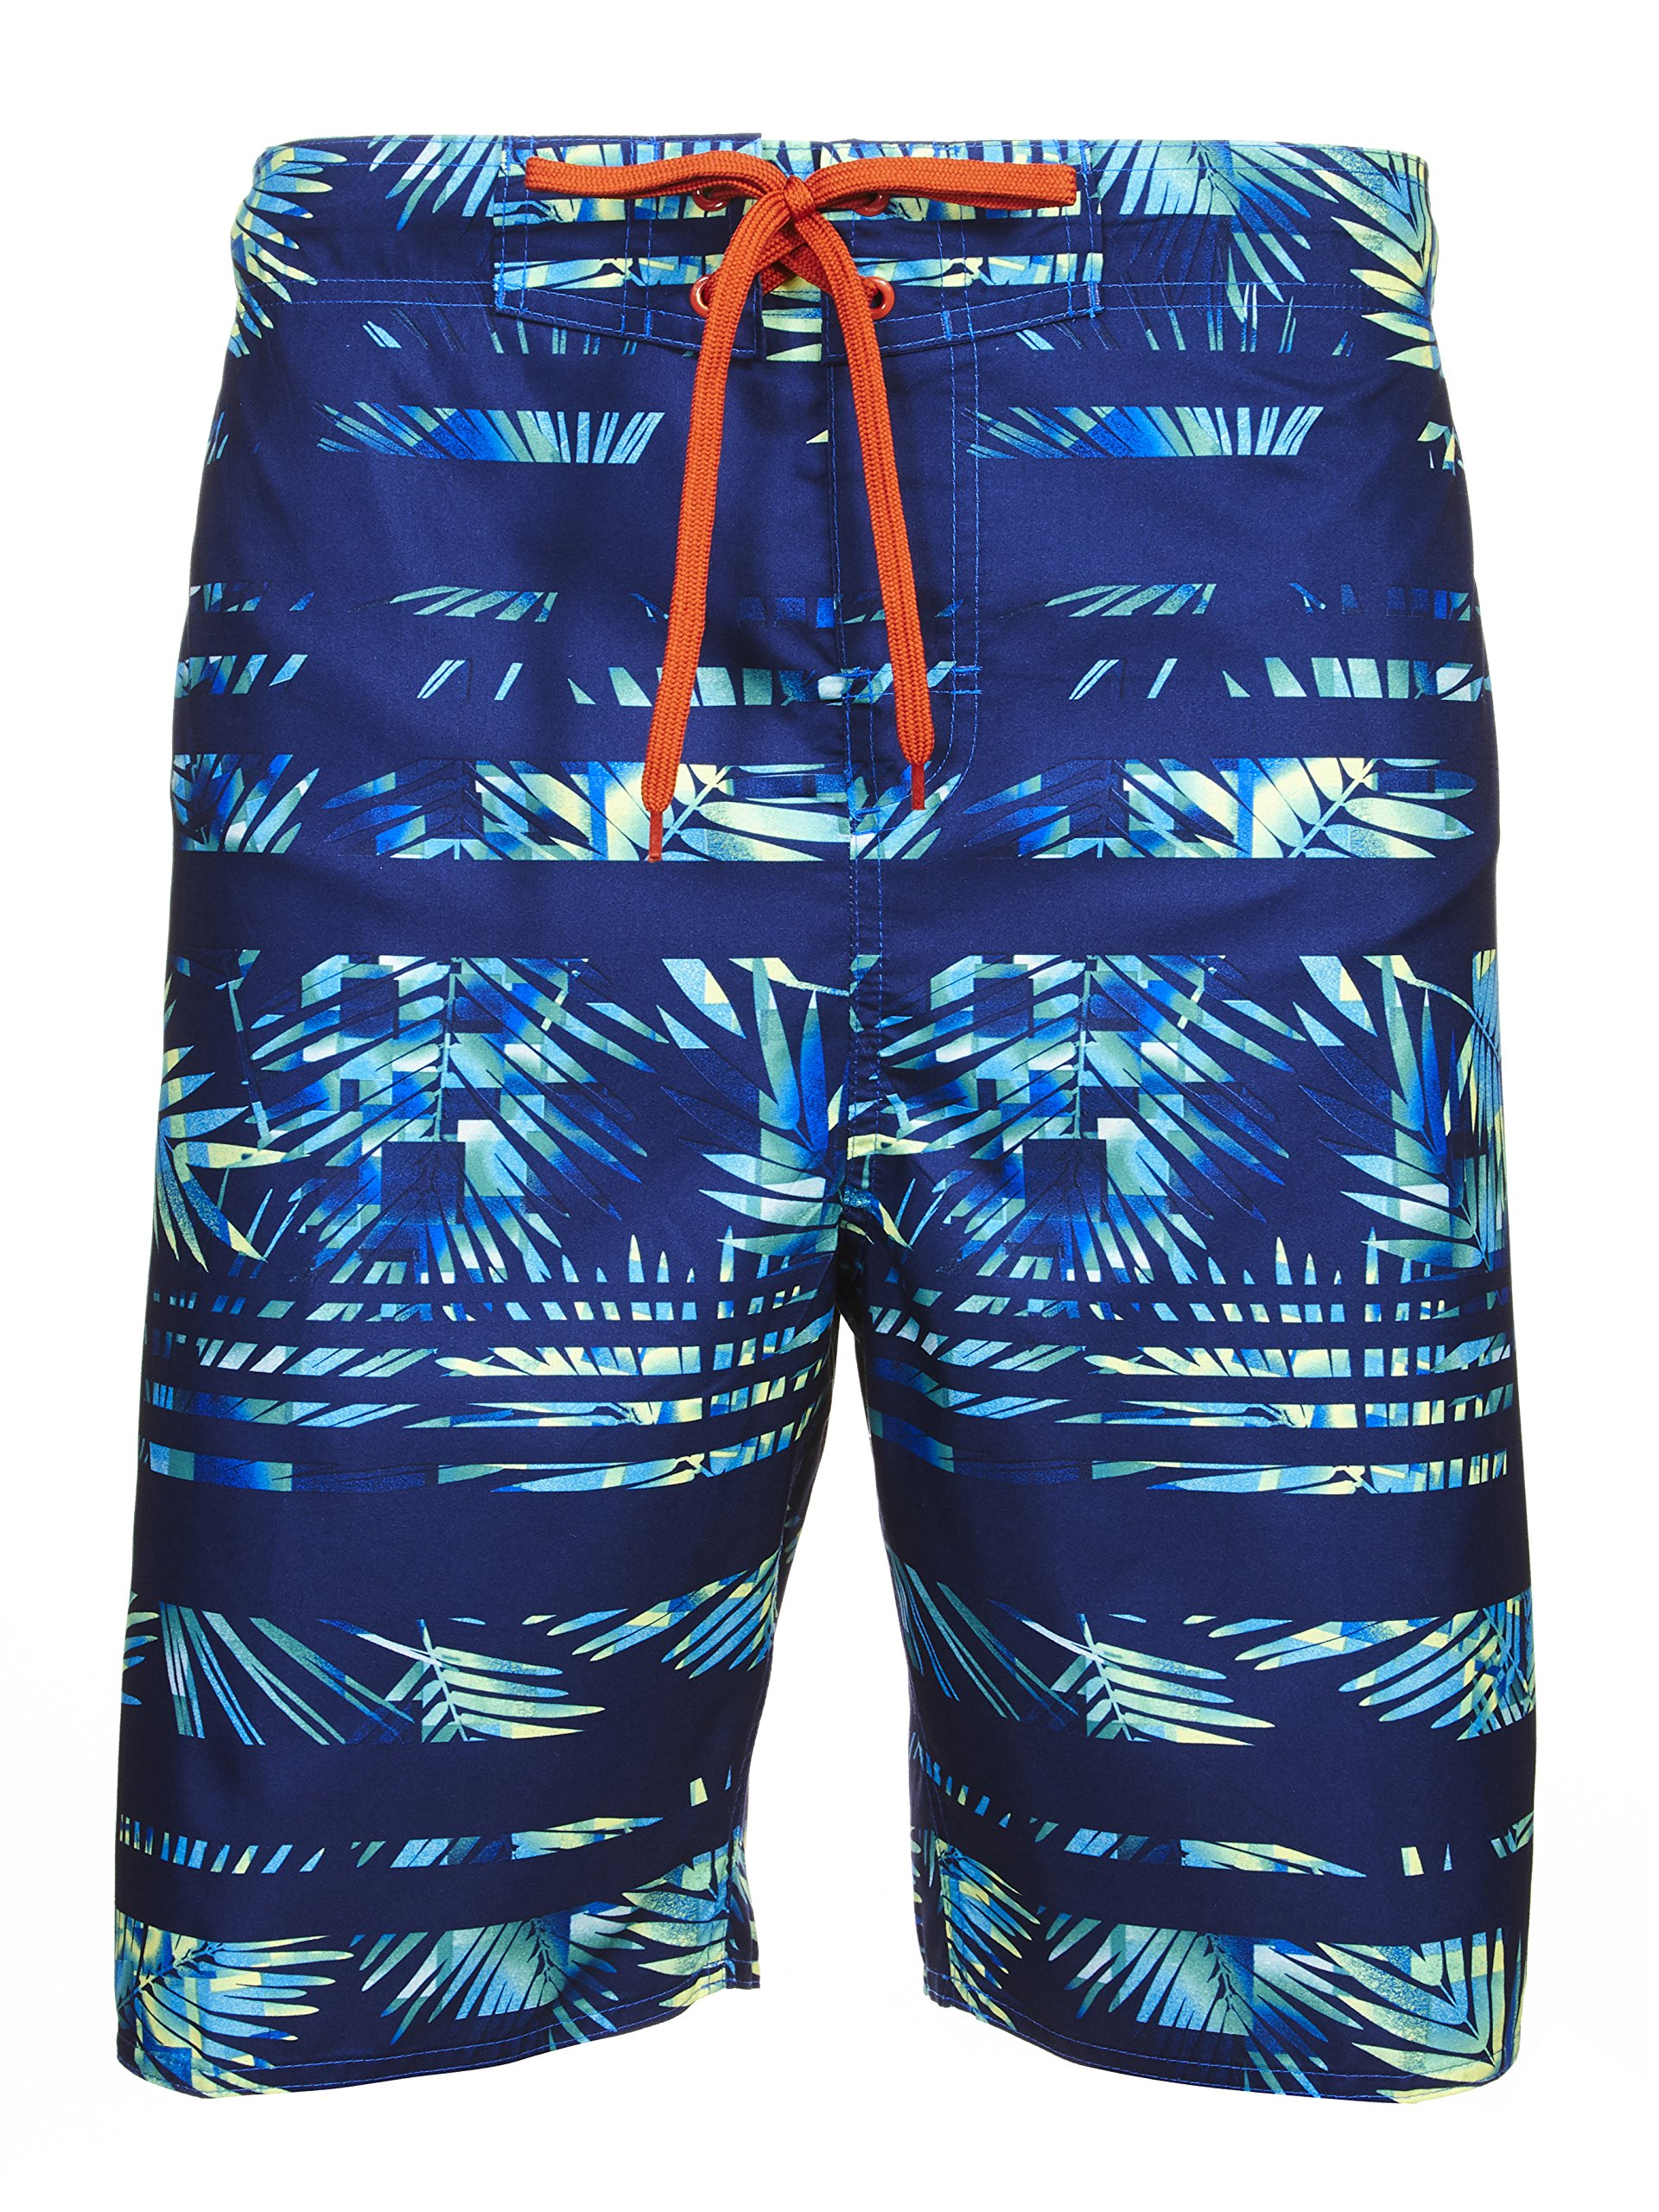 Laguna Mens Rainbow Palm Stripe Boardshort Swim Trunks Bathing Suits Blue Combo Large